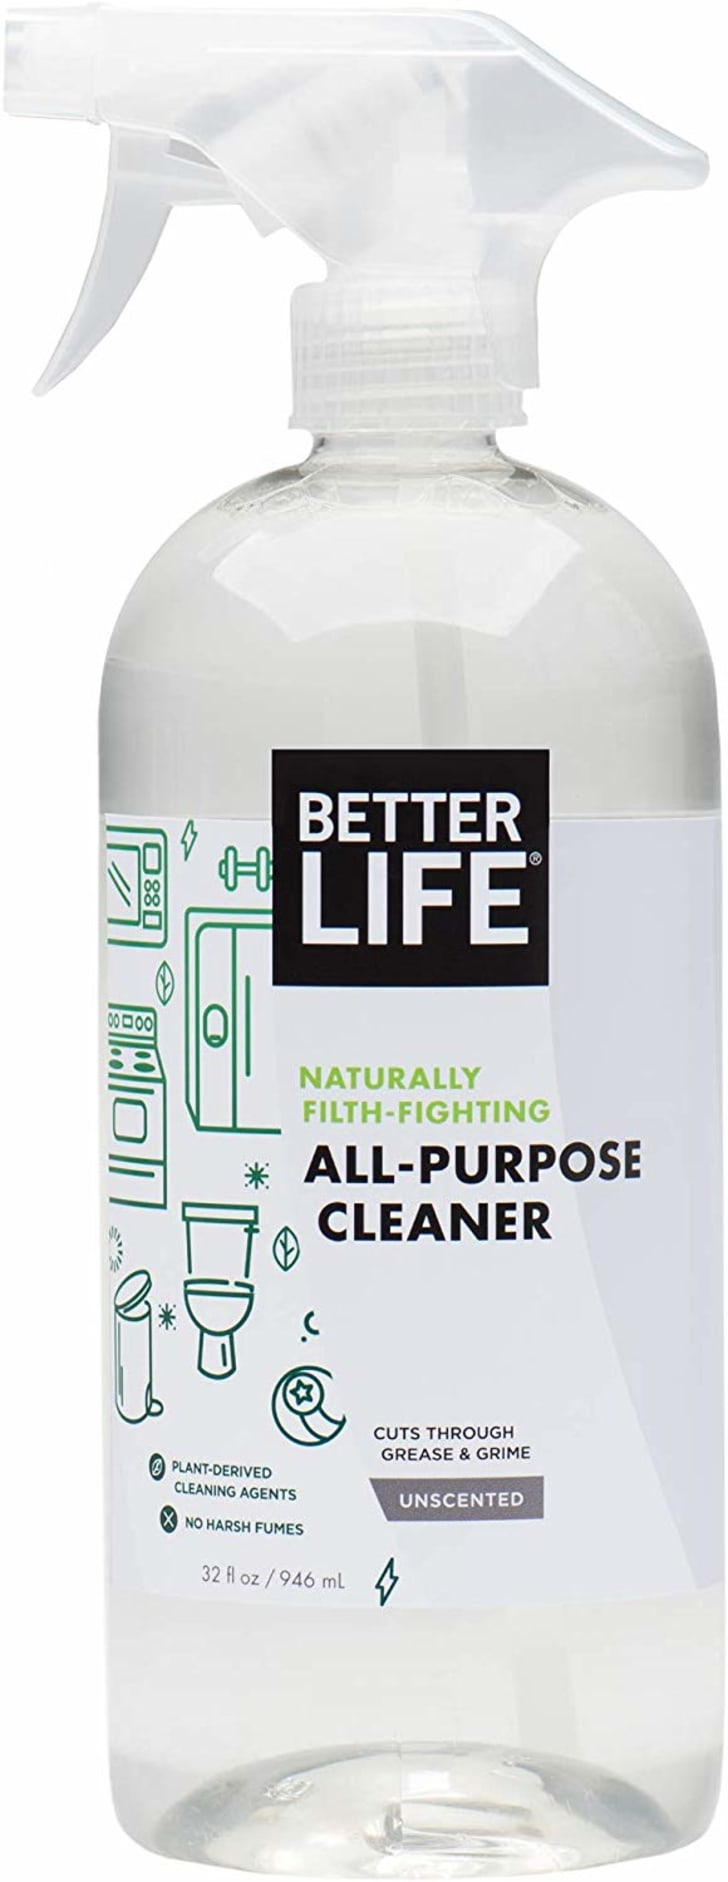 Better Life cleaner.